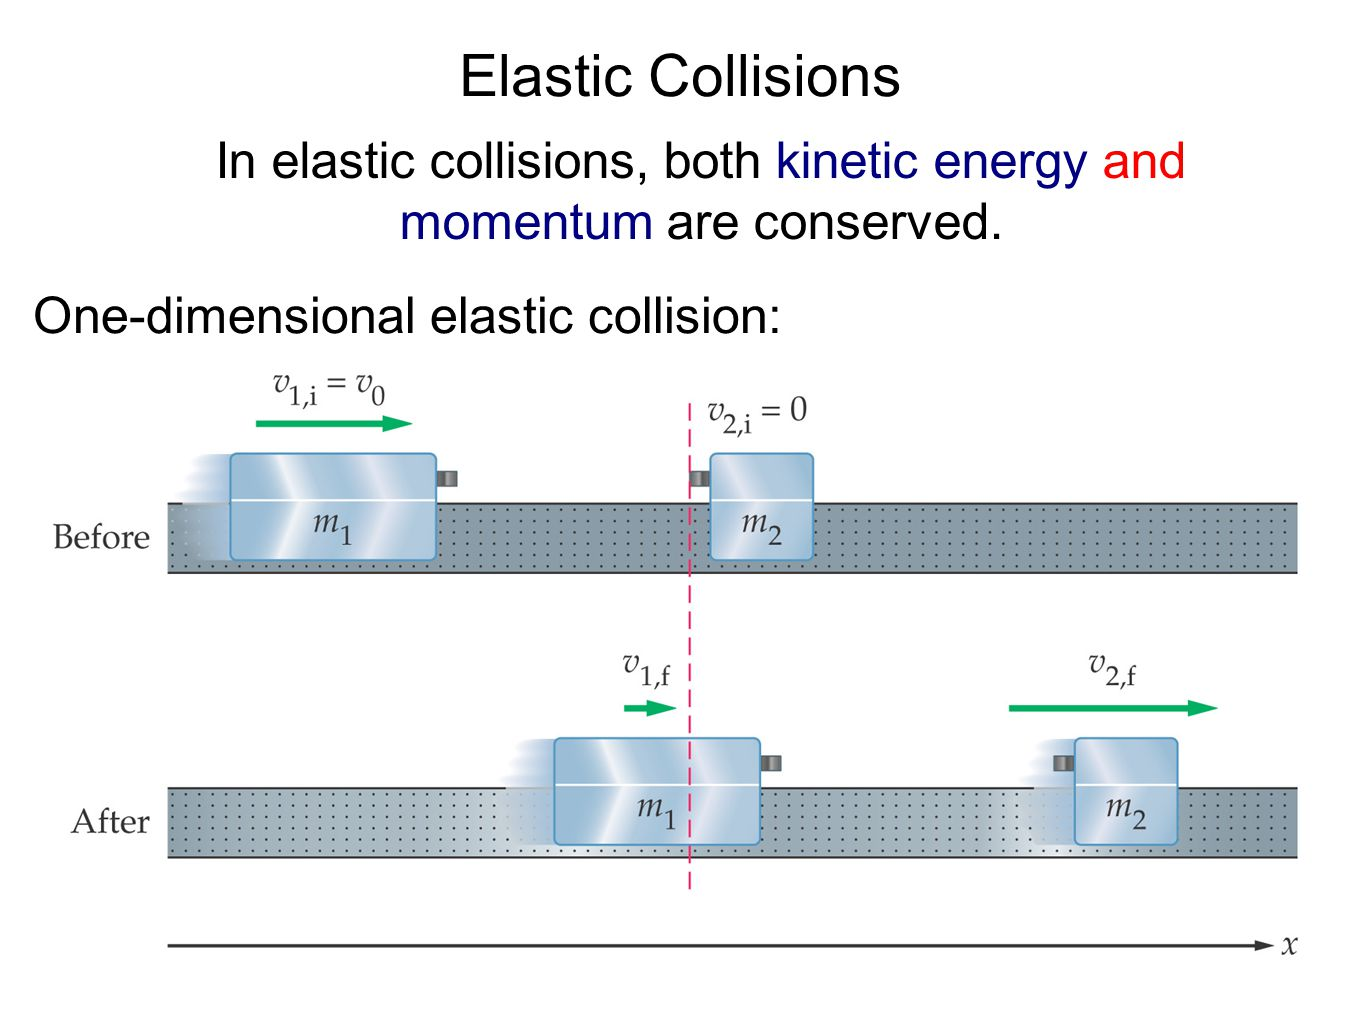 In elastic collisions, both kinetic energy and momentum are conserved.